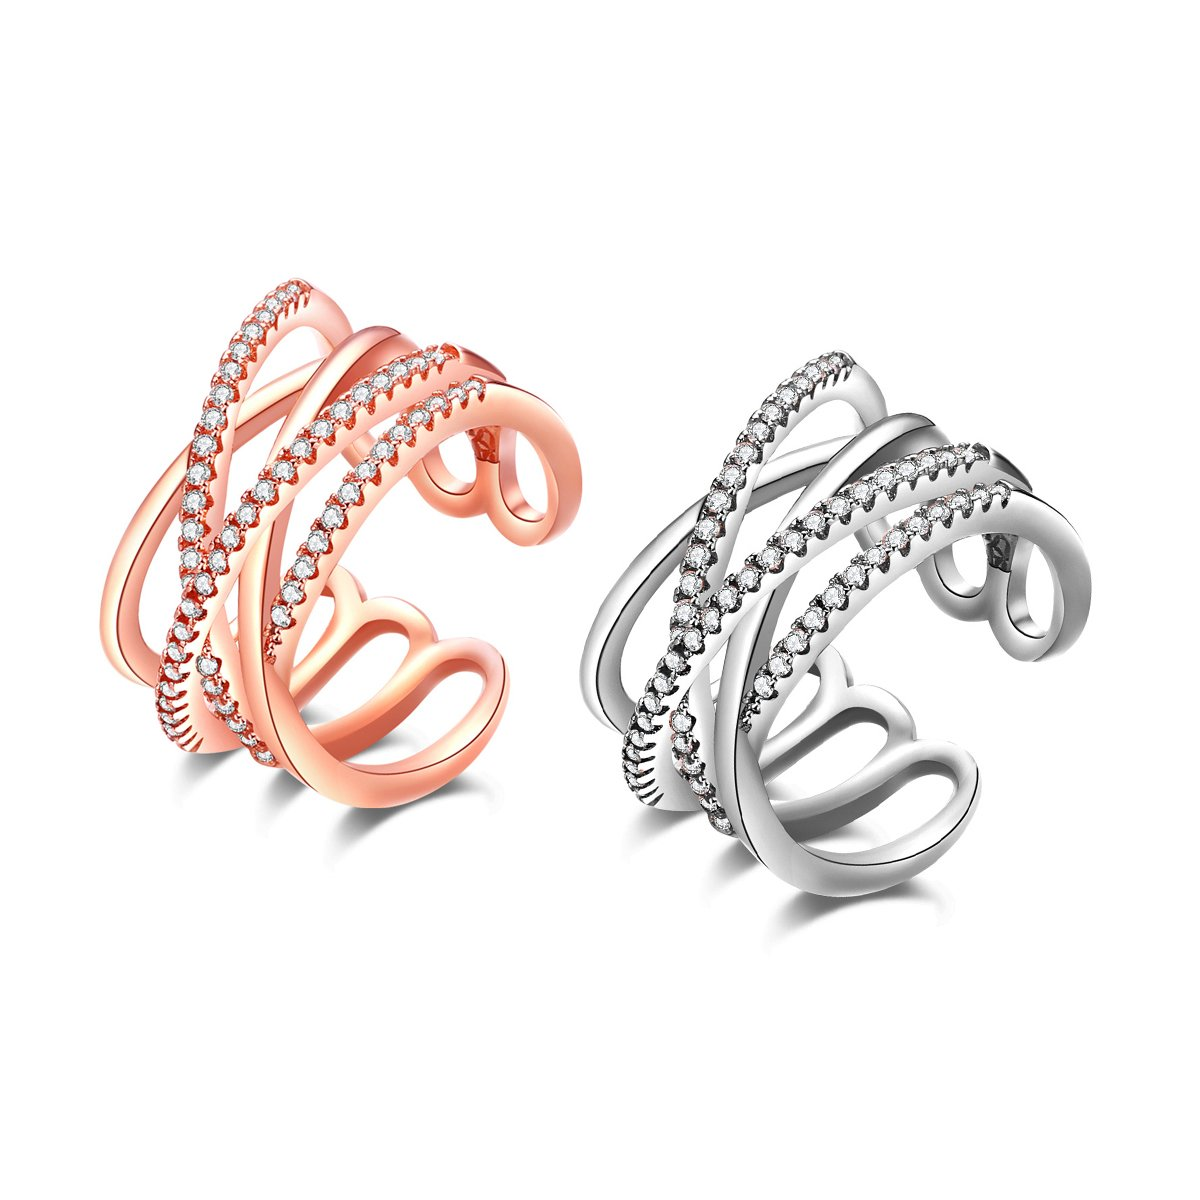 efigo Fashion Womens Statement Ring Stackable Band Rings for Women Sterling Silver/Rose Gold Jewelry